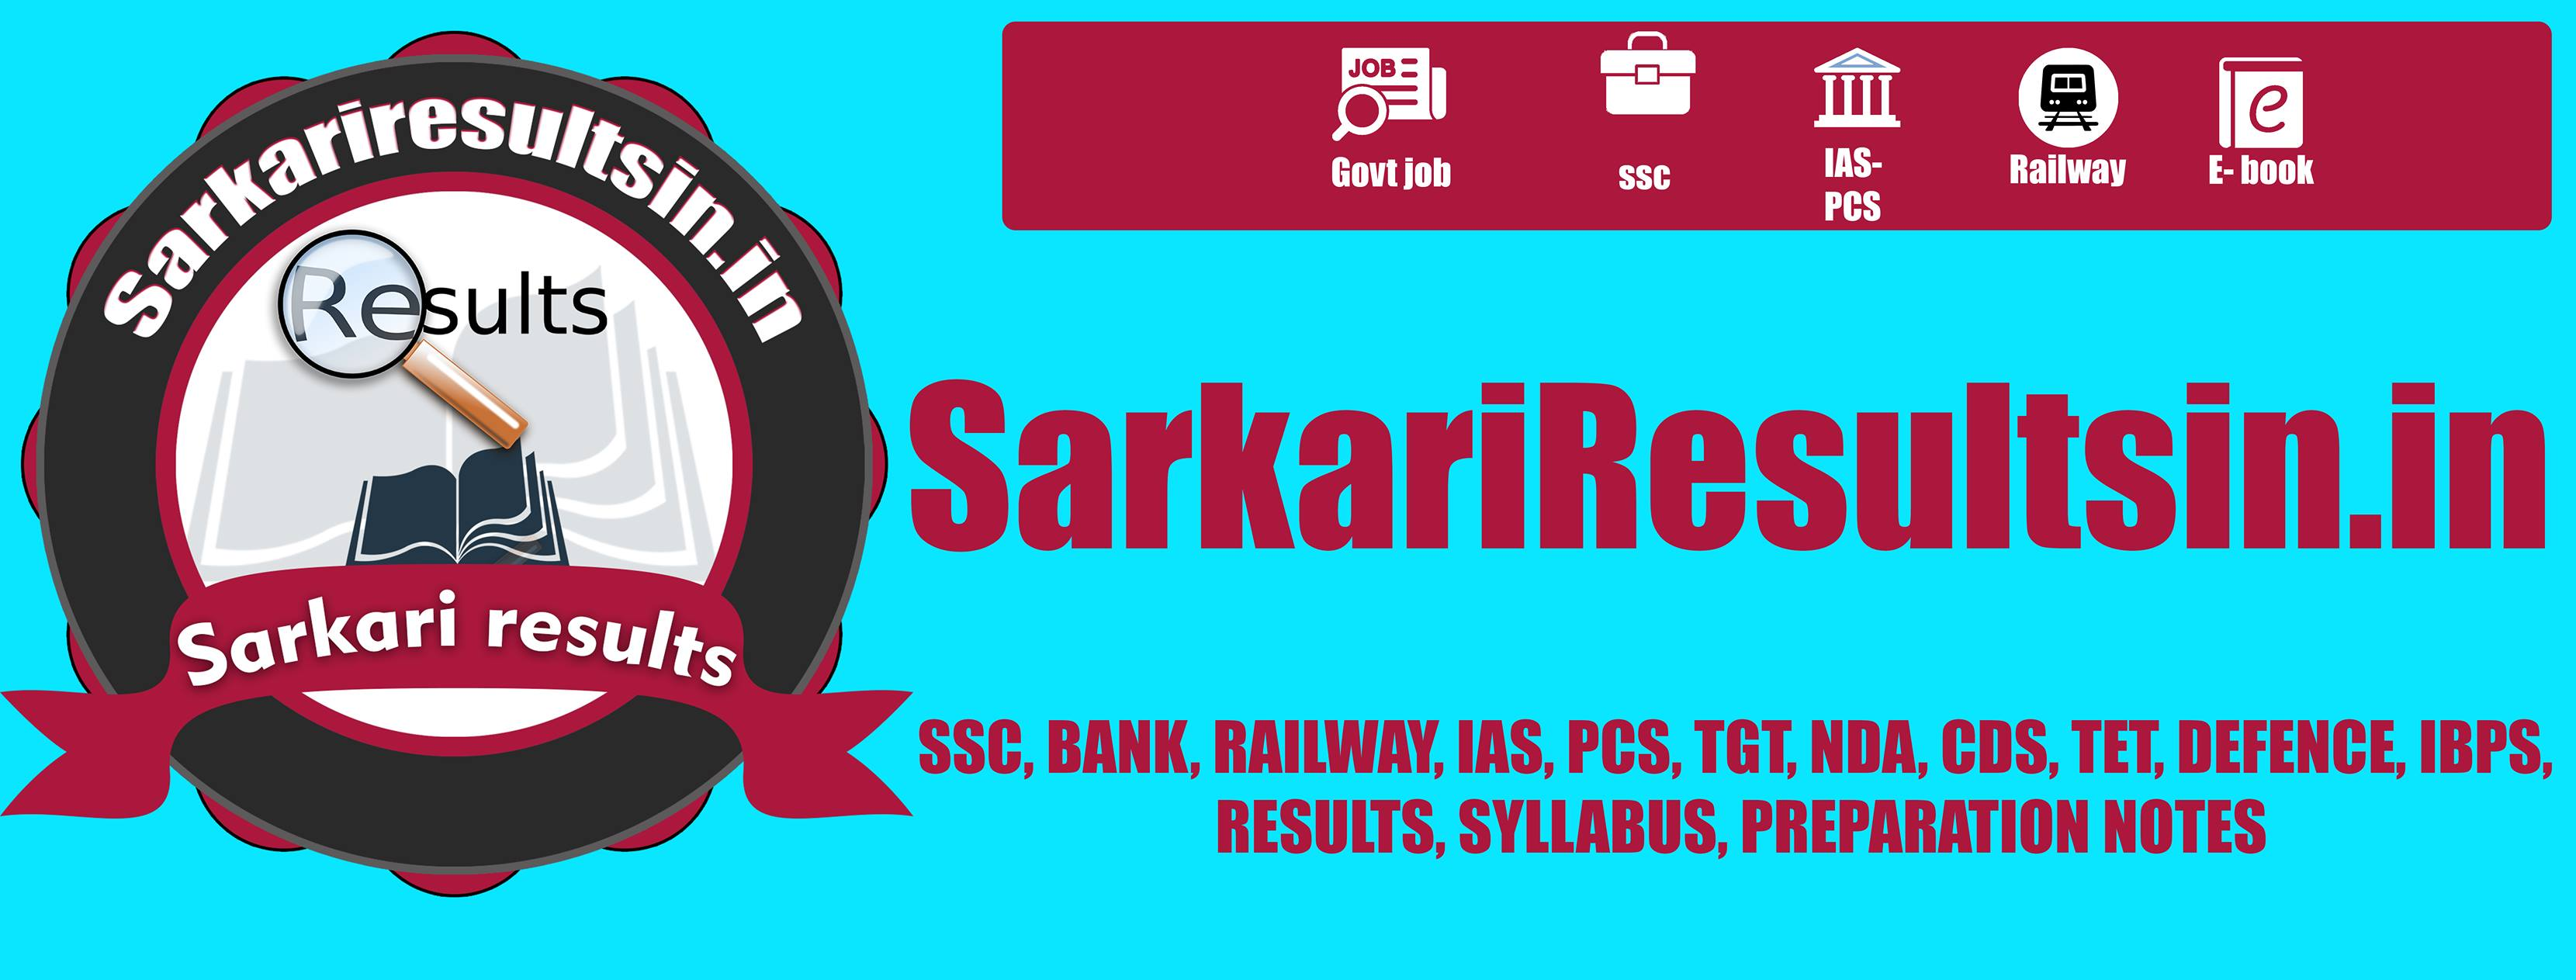 SBI Clerk Final Result 2019, sarkari results | Govt jobs ... on church jobs, railway jobs, hr jobs, private sector jobs, law jobs, english jobs, industry jobs, physics jobs,